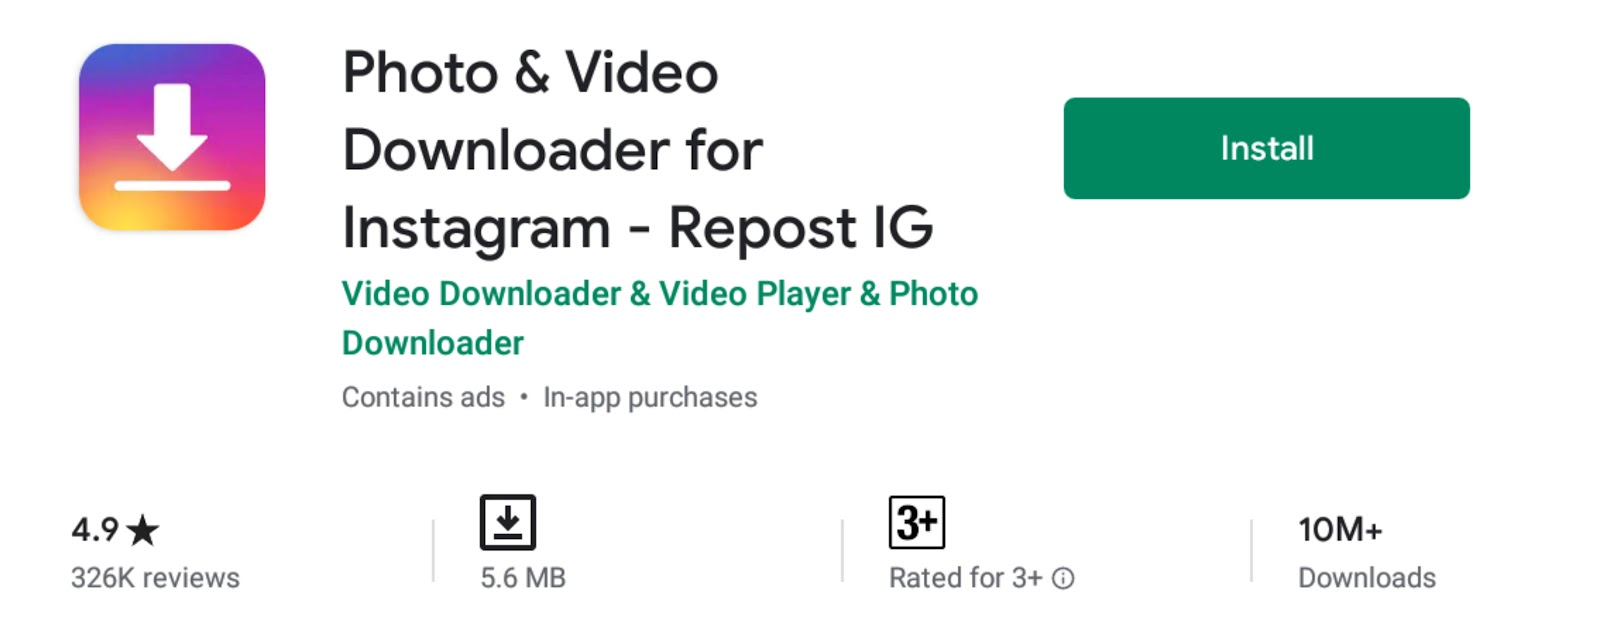 Photo & Video Downloader For instagram - Repost IG